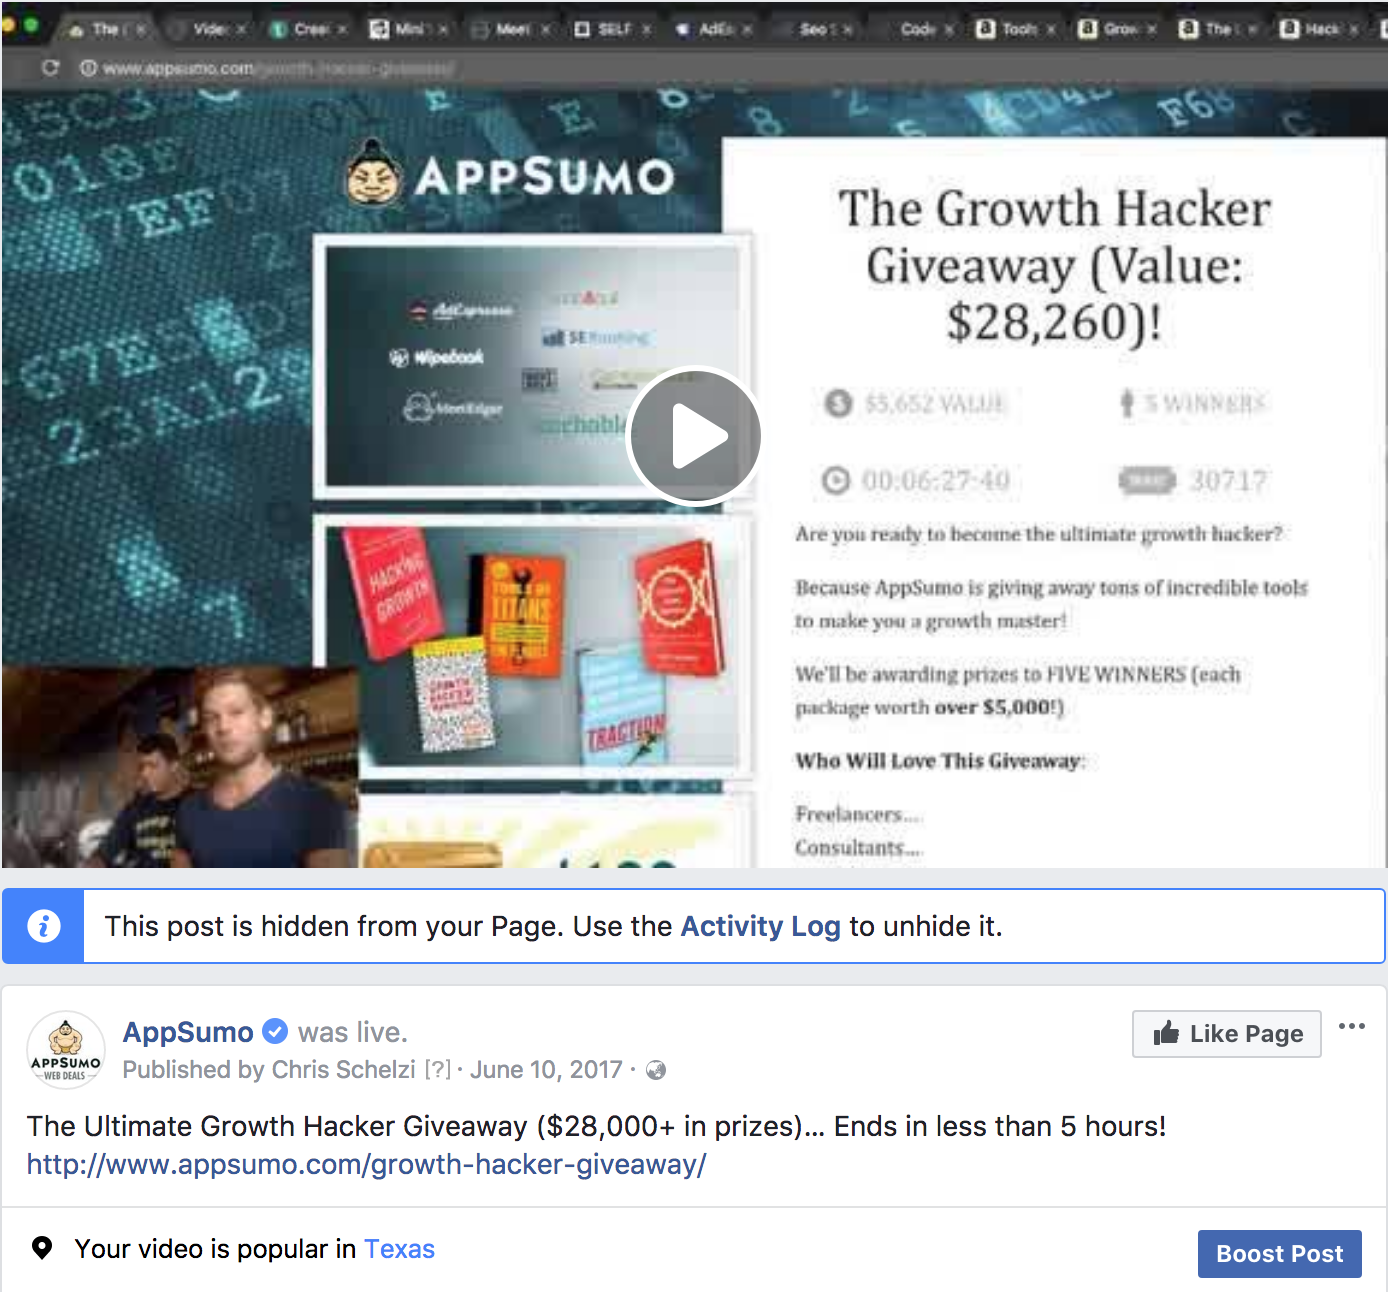 Screenshot showing a facebook promotion for an appsumo giveaway